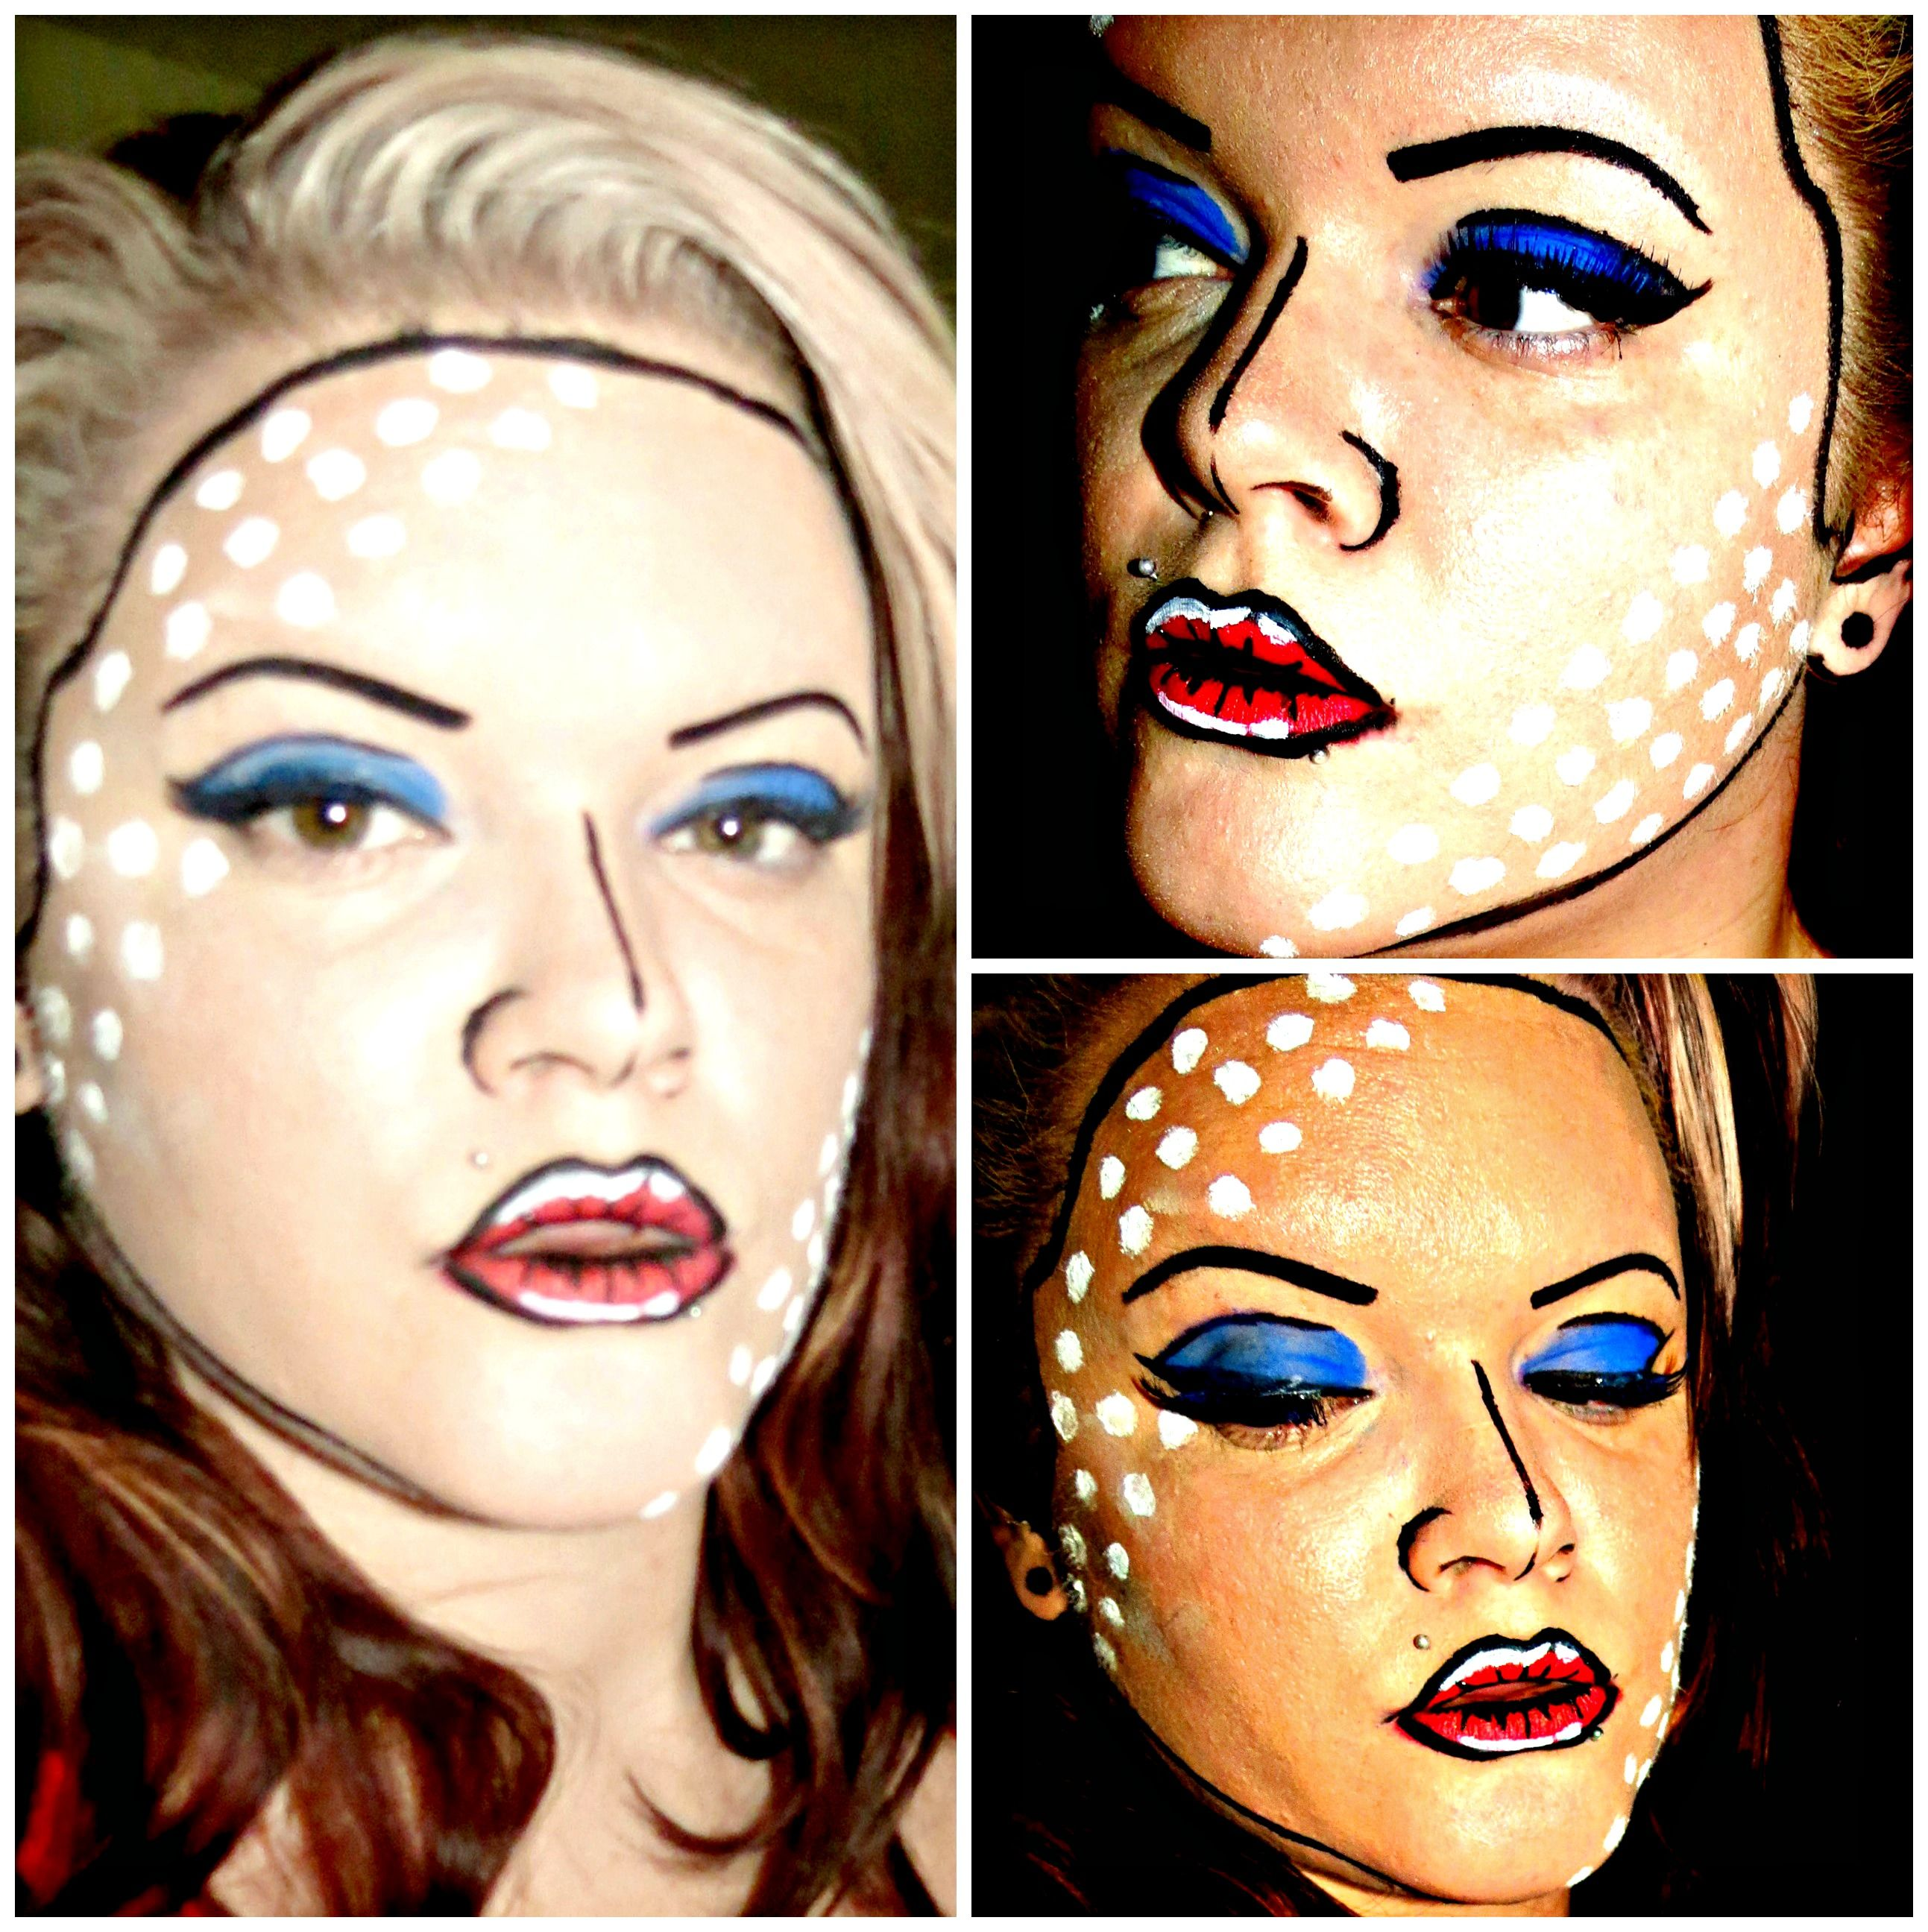 4th of July makeup - Pop Art/Cartoon inspired   Amber Janelle ...